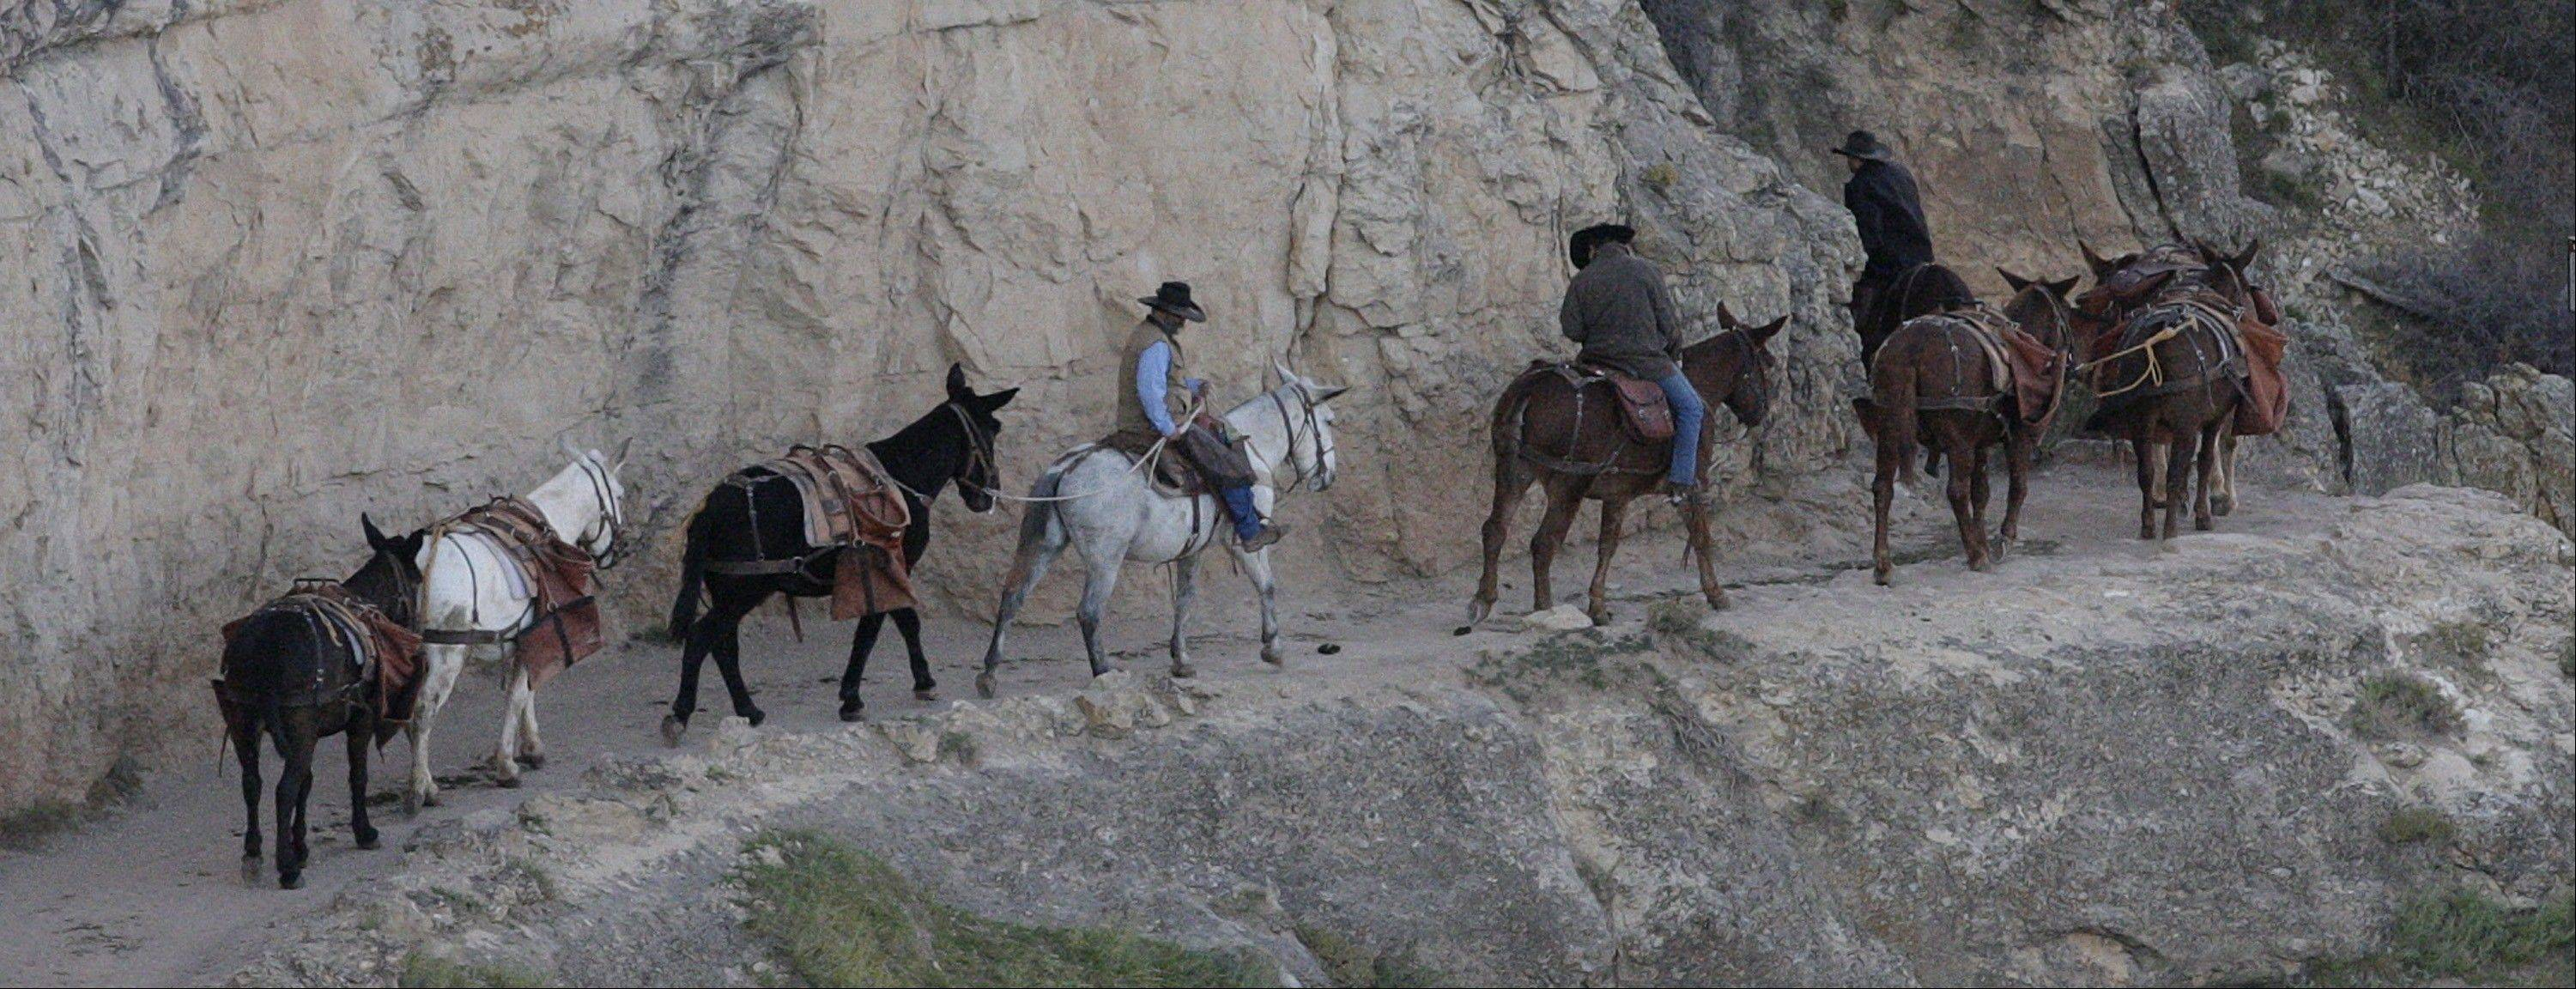 A mule team walks along the Bright Angel Trail on the South Rim of the Grand Canyon National Park in Arizona.